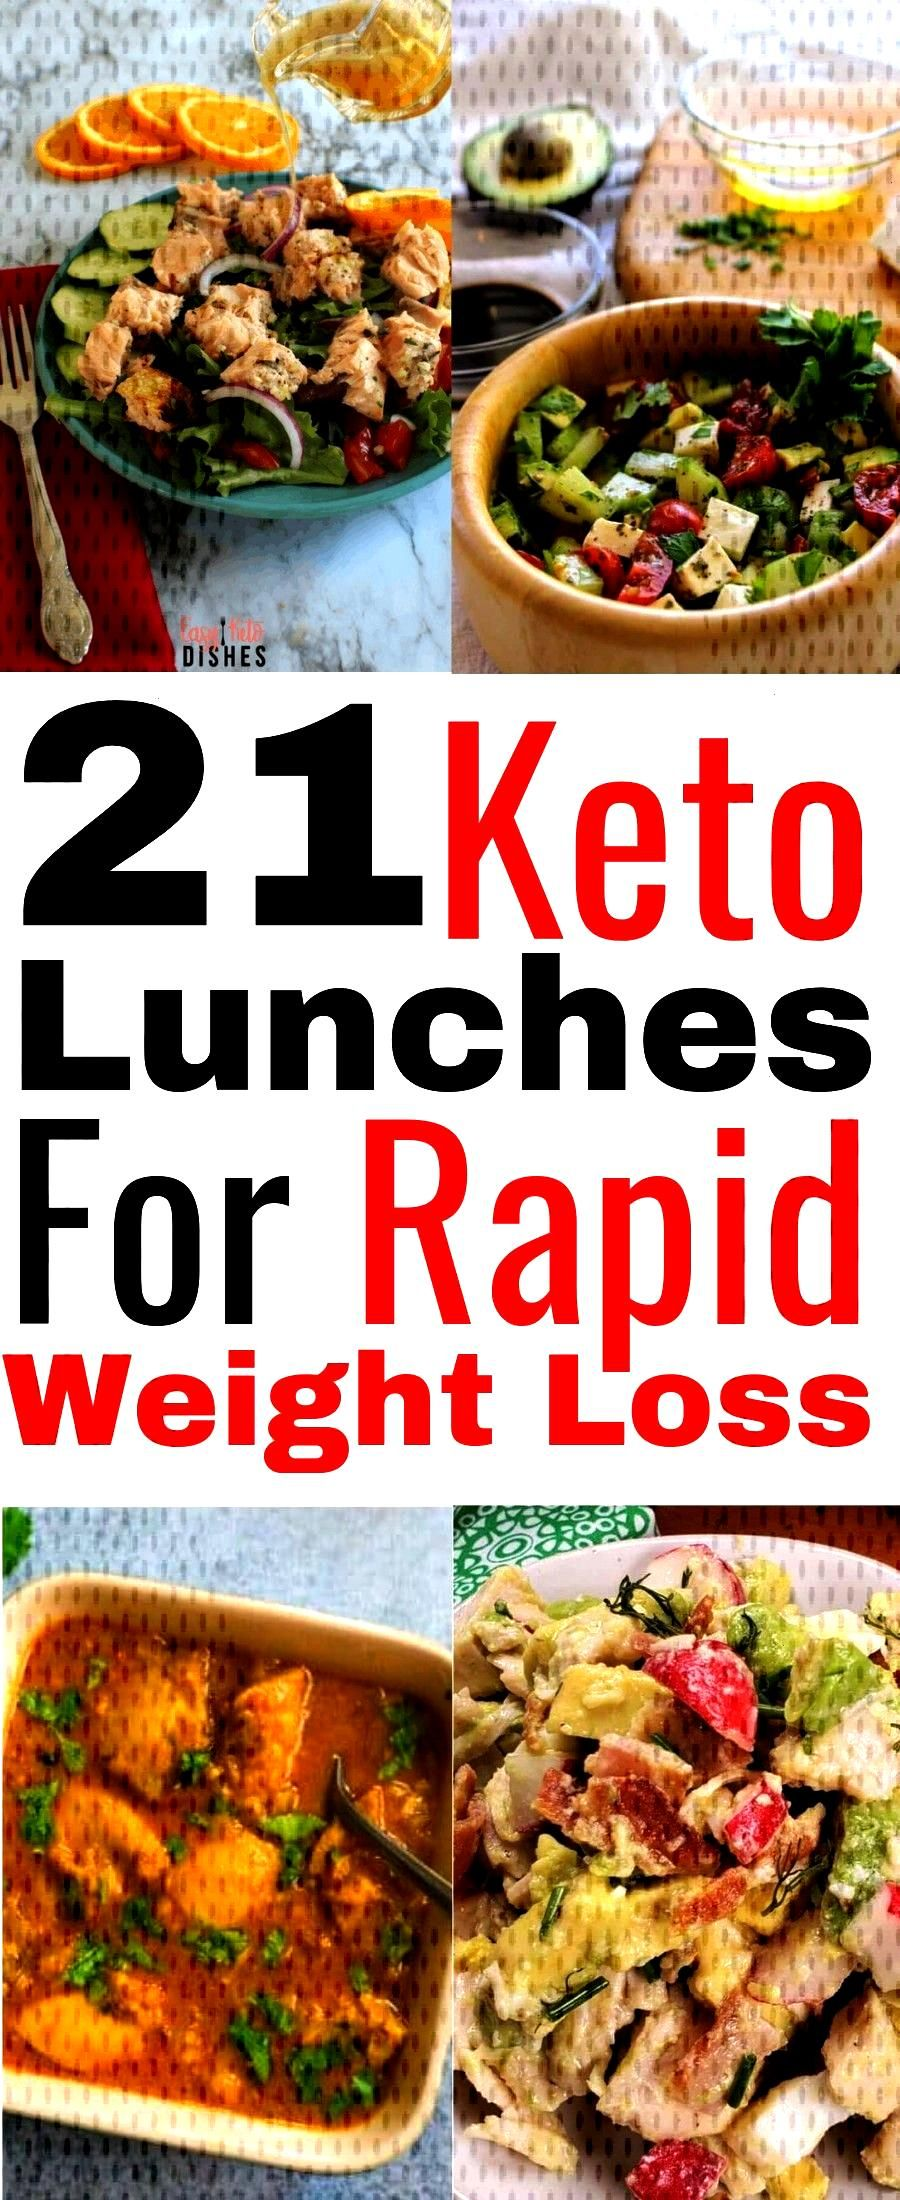 keto lunches for rapid weight loss! Im so glad I found these easy keto lunch ideas that I can take